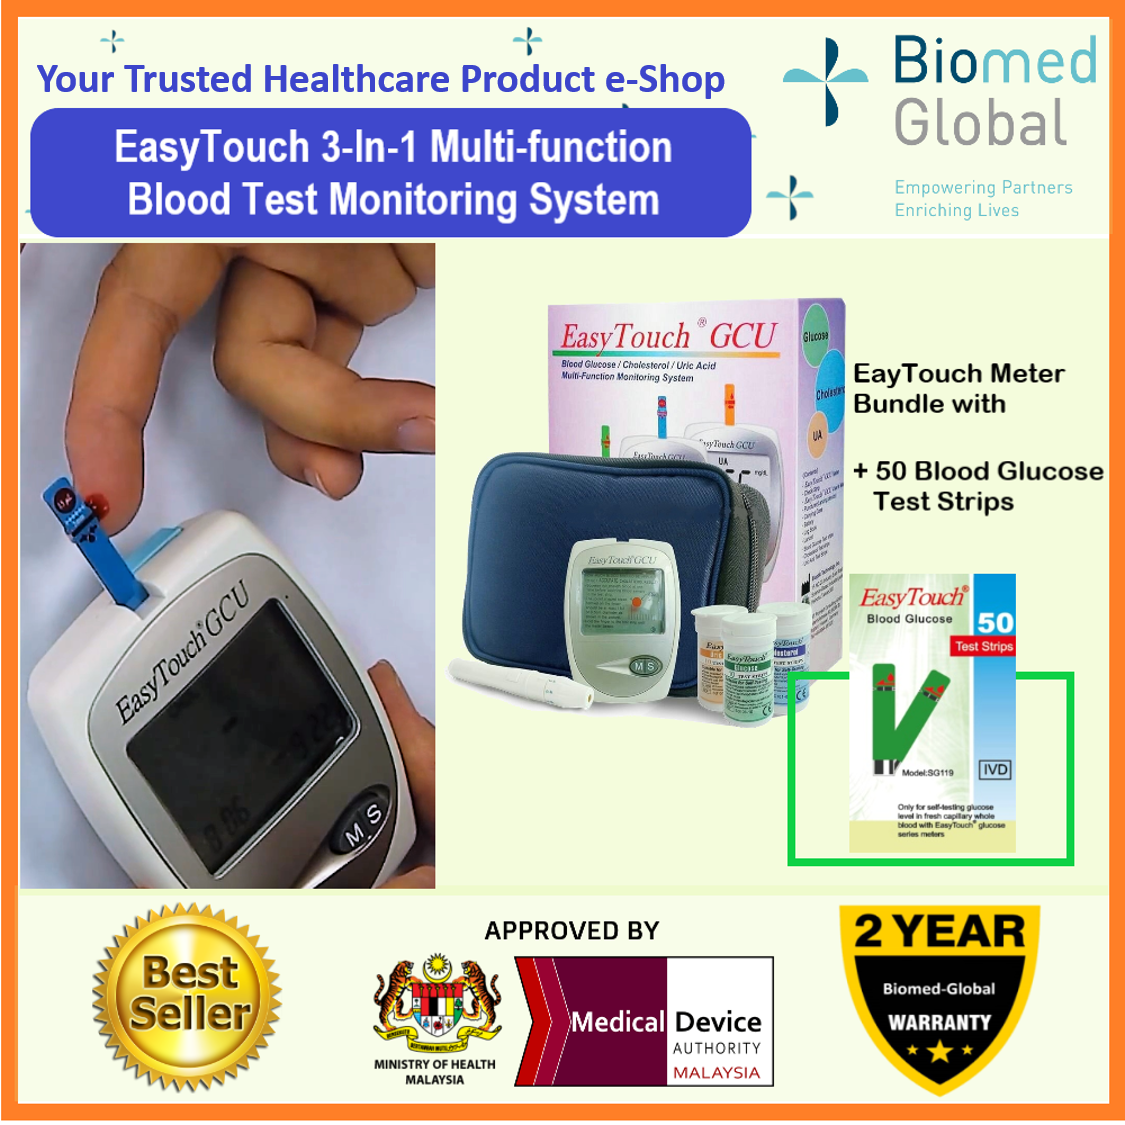 EasyTouch GCU 3-in-1 Blood Glucose, Cholesterol and Uric Acid Meter, FREE with 50 Blood Glucose Test Strips (BUNDLE PACK)